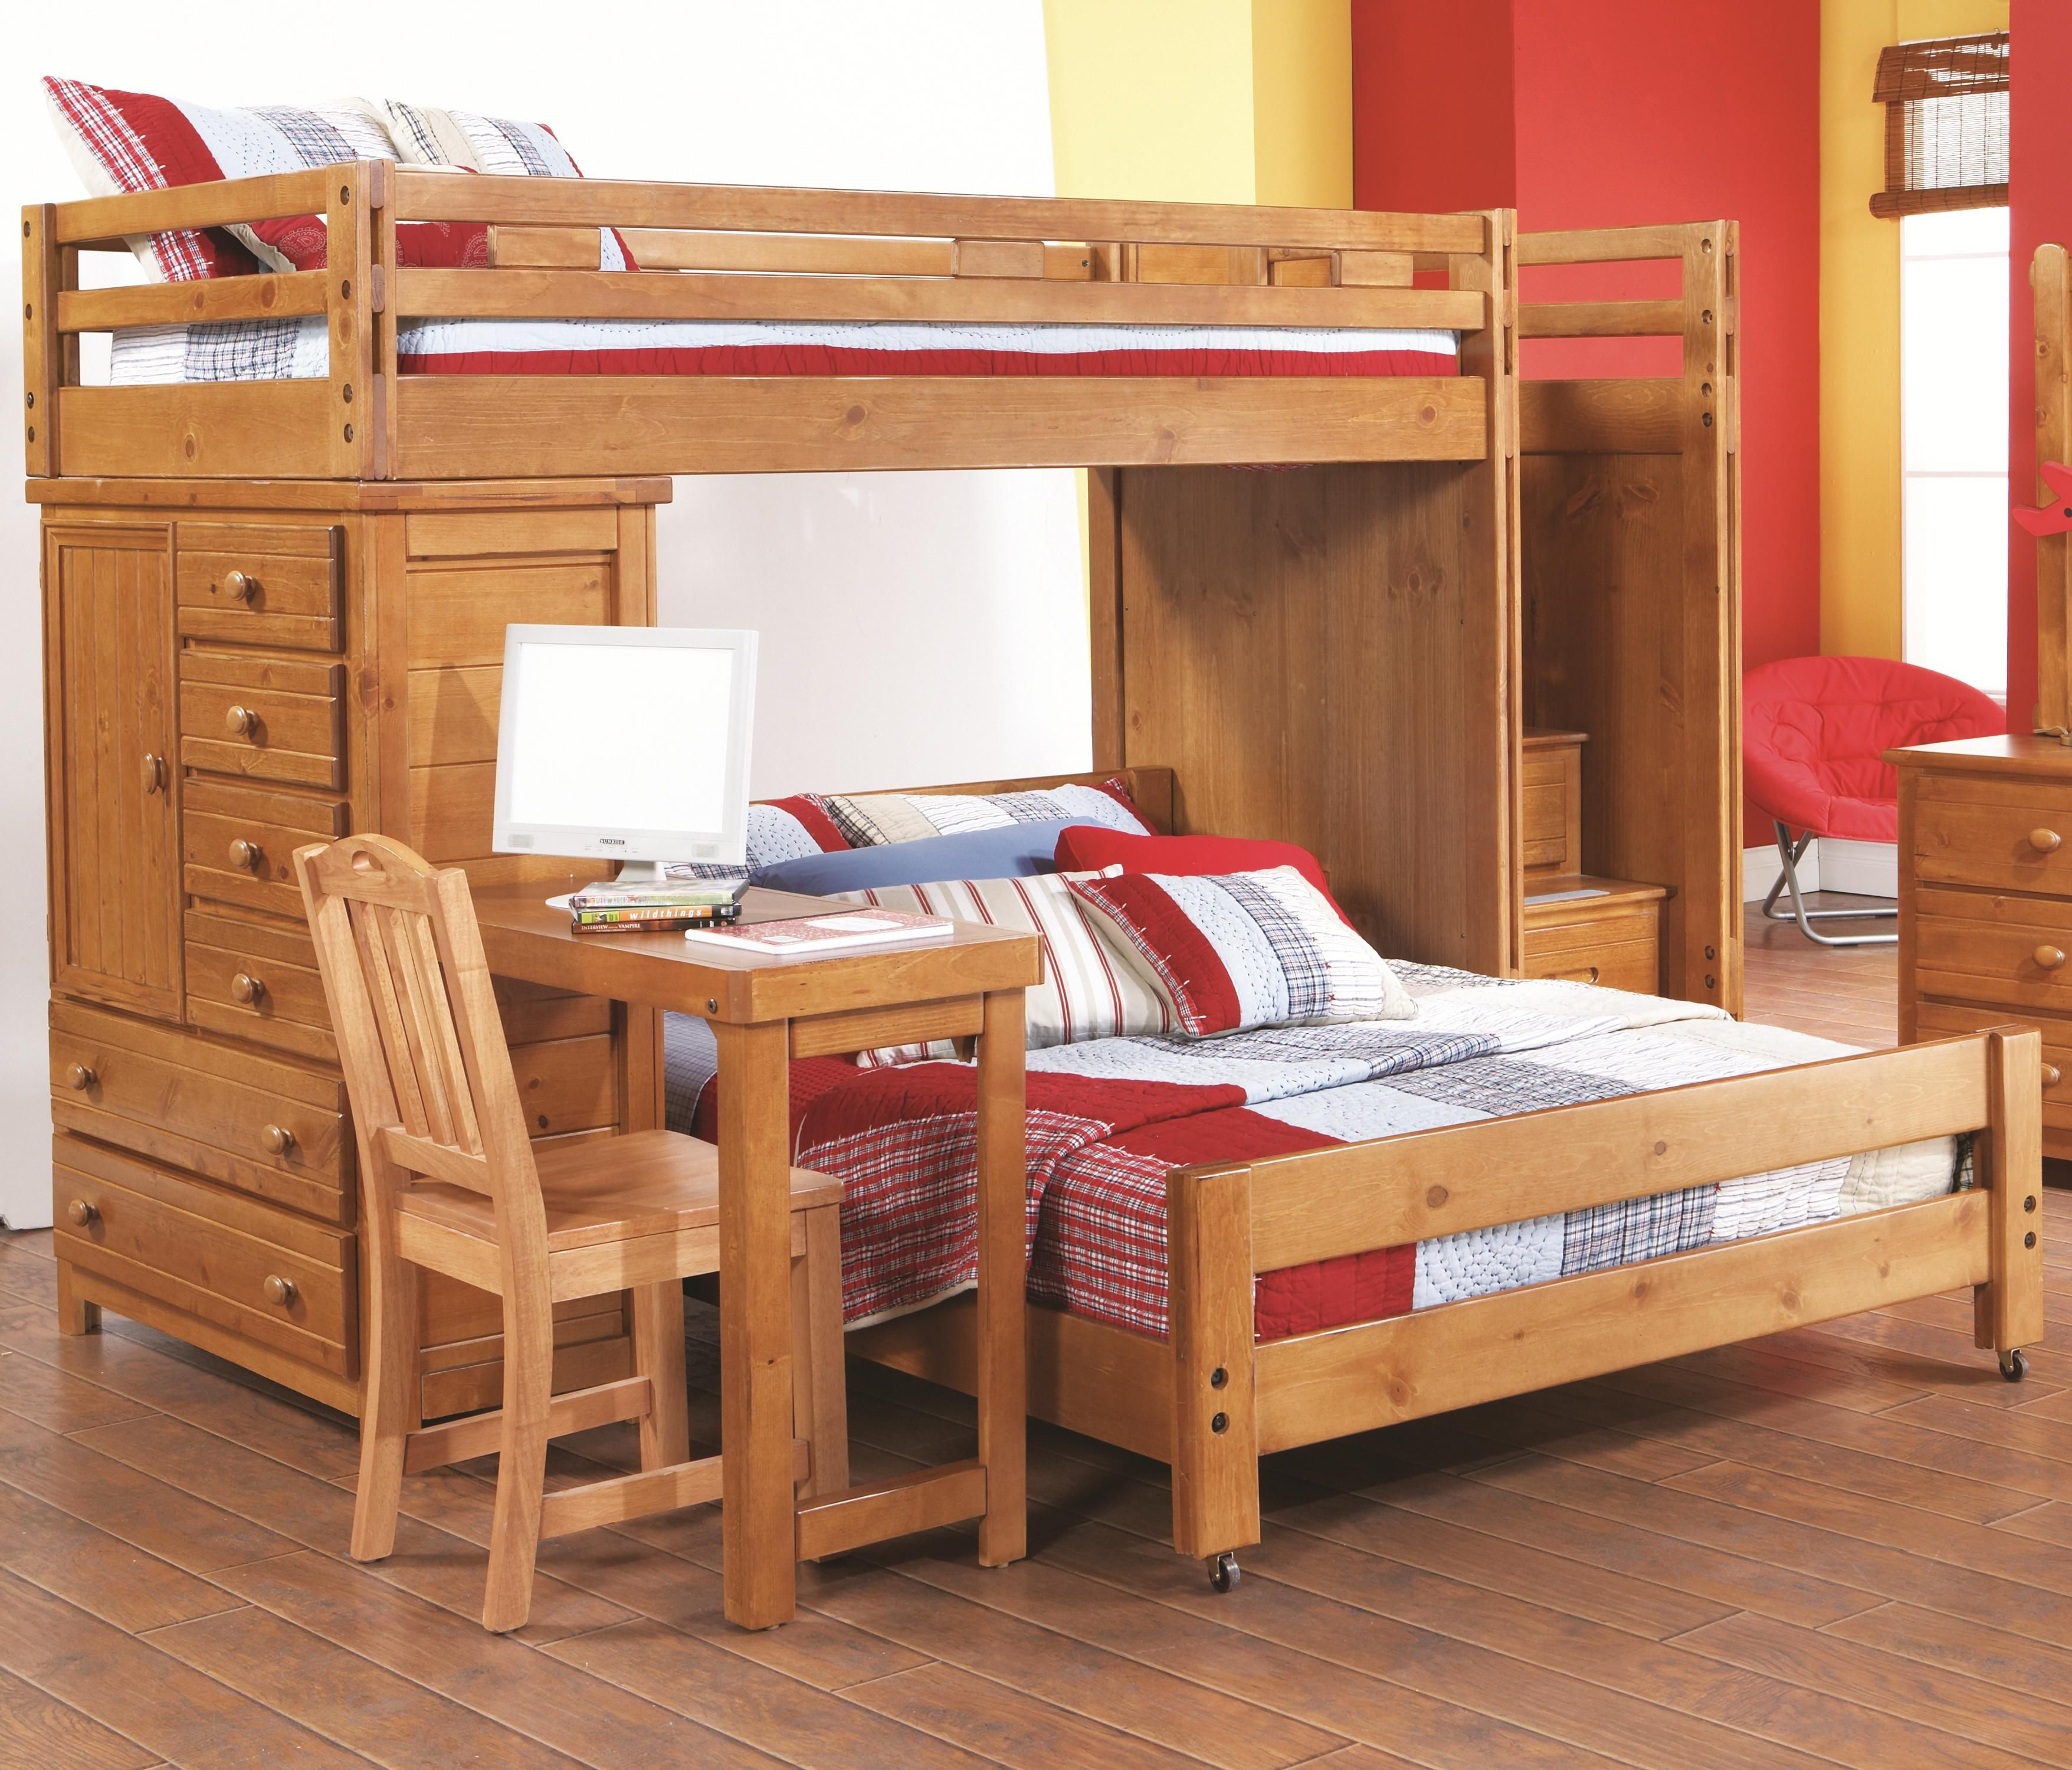 Item Not Found Bunk Beds With Stairs Kids Bunk Beds Bunk Beds